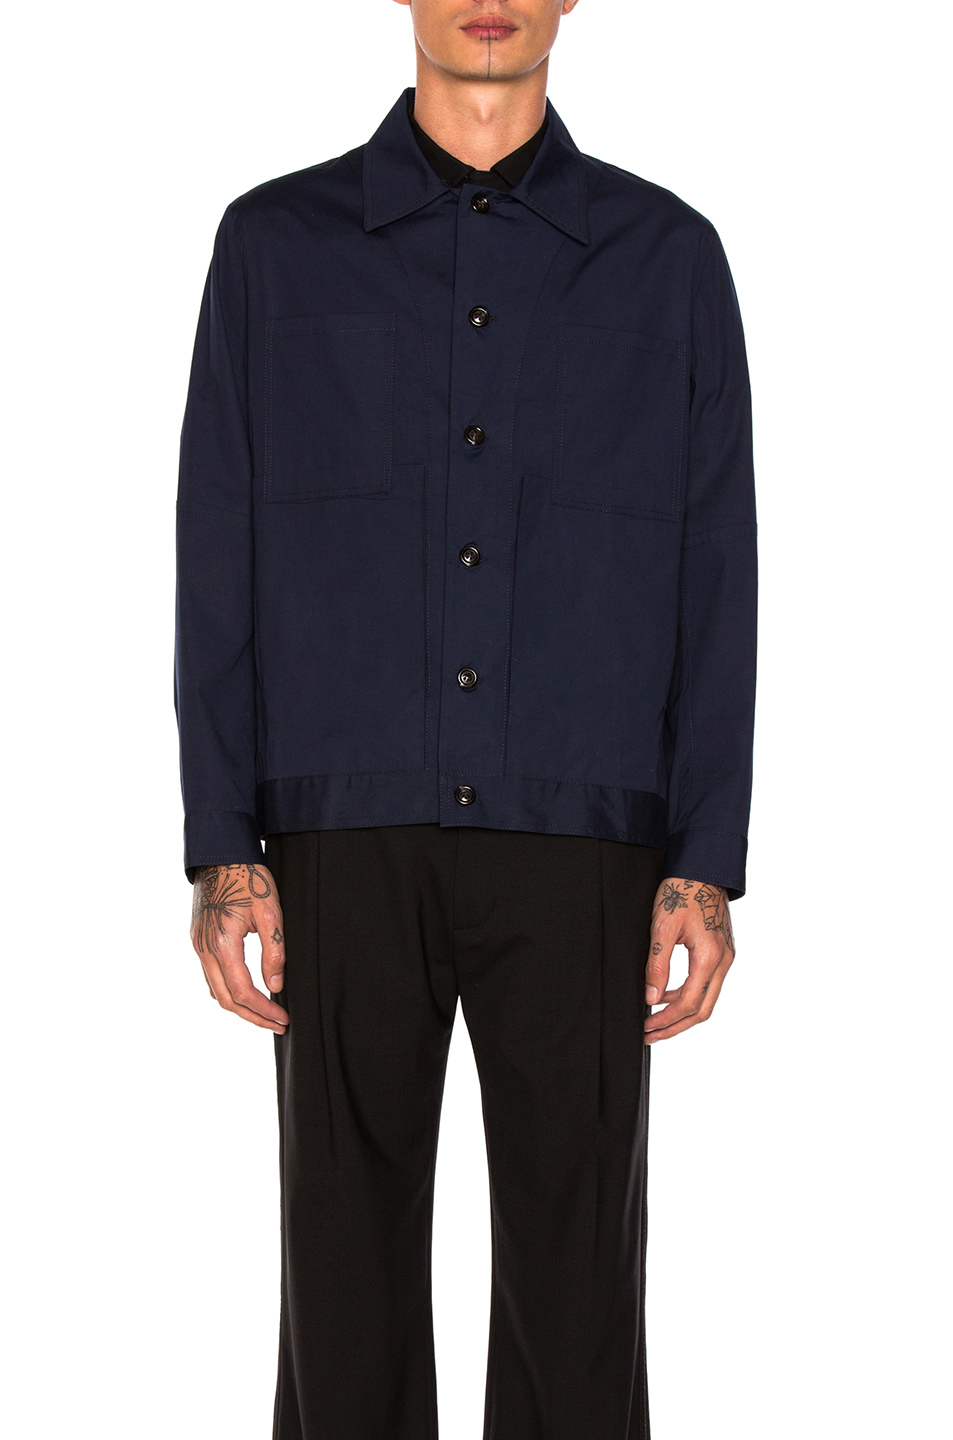 Craig Green Cotton Work Jacket in Blue